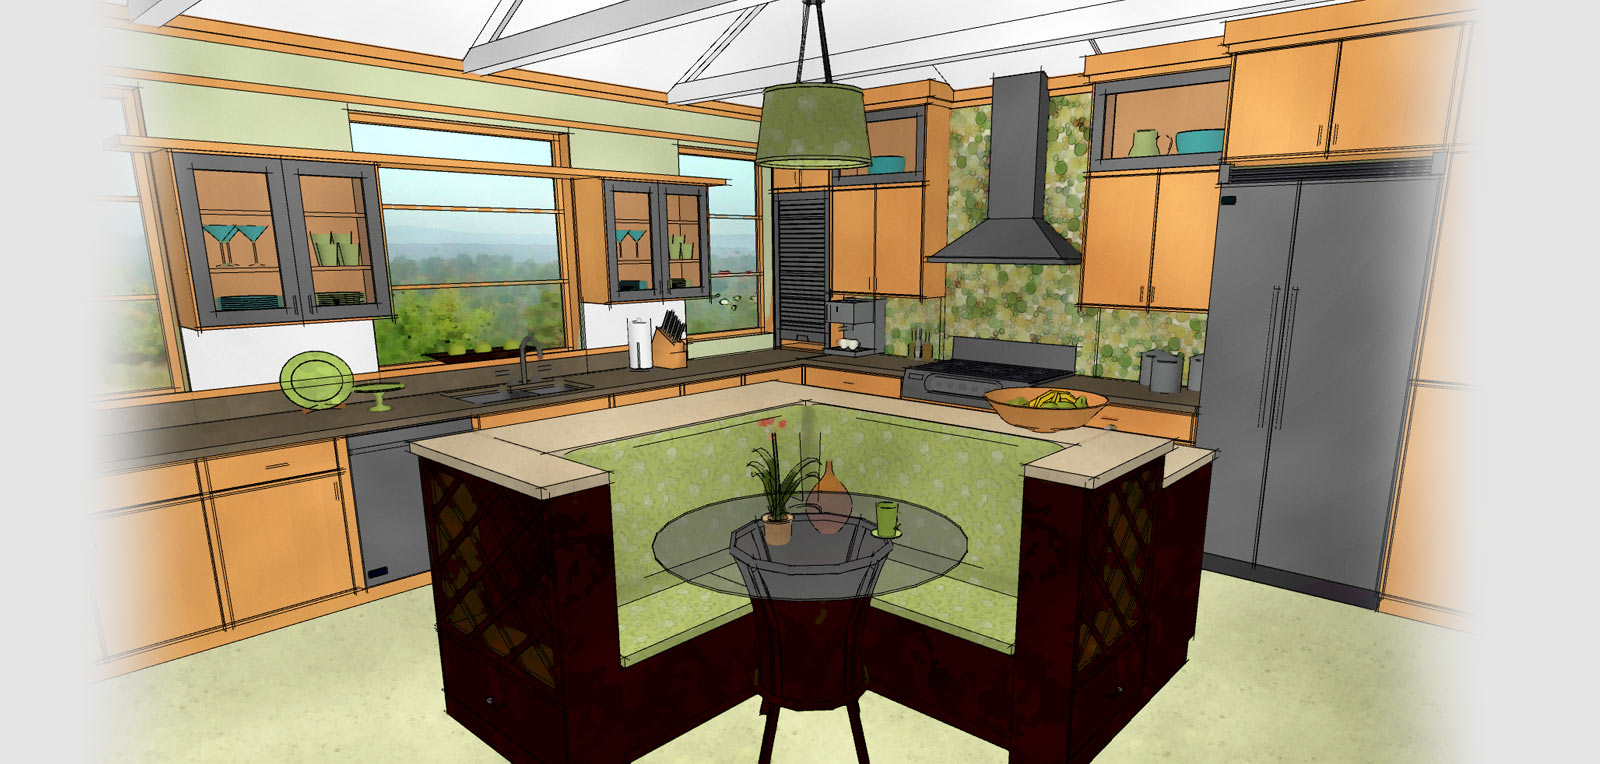 Kitchen Bathroom Home Designer Kitchen Bath Software